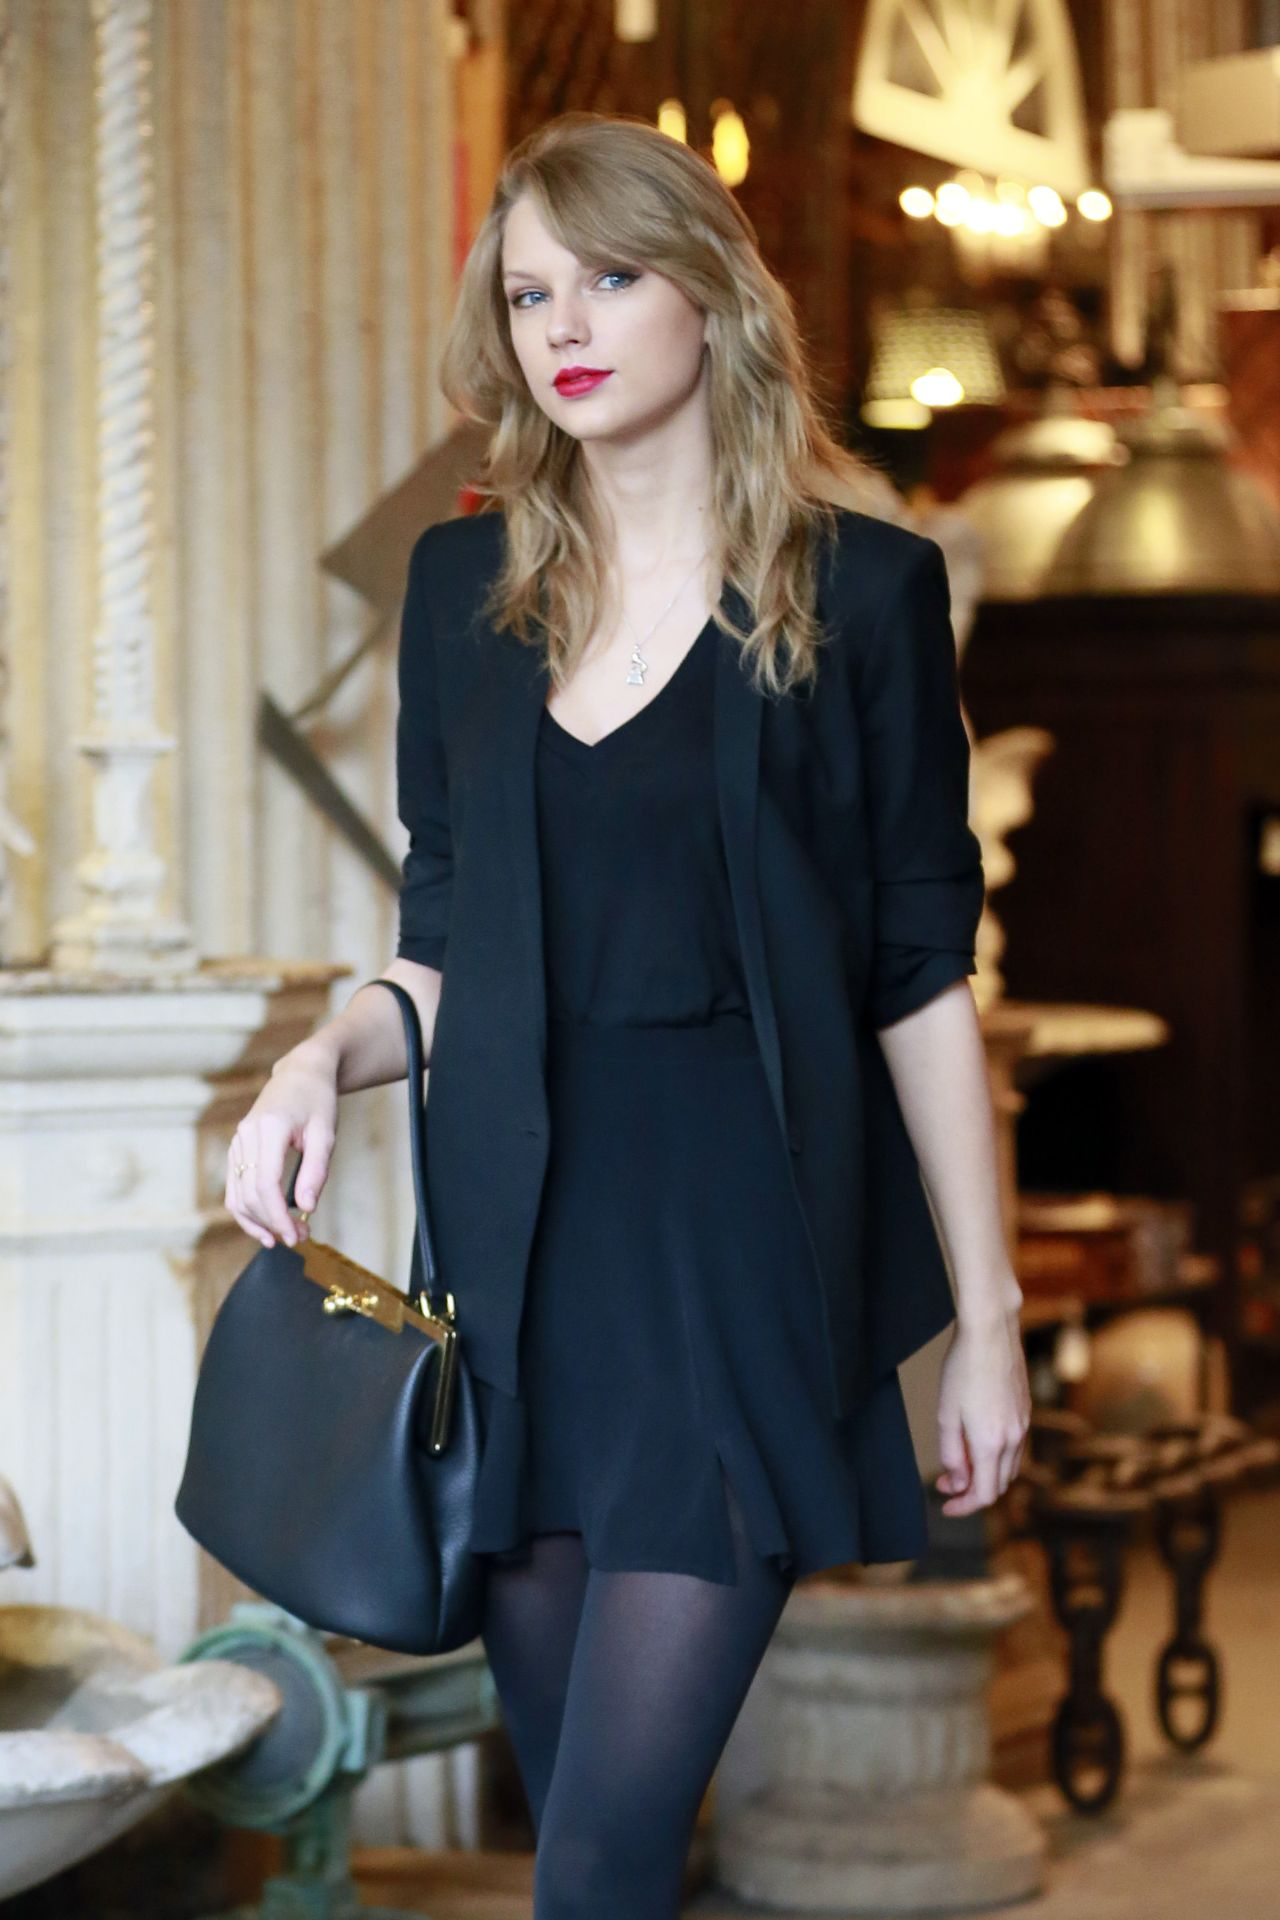 Taylor Swift Street Style At An Antique Shop In Los